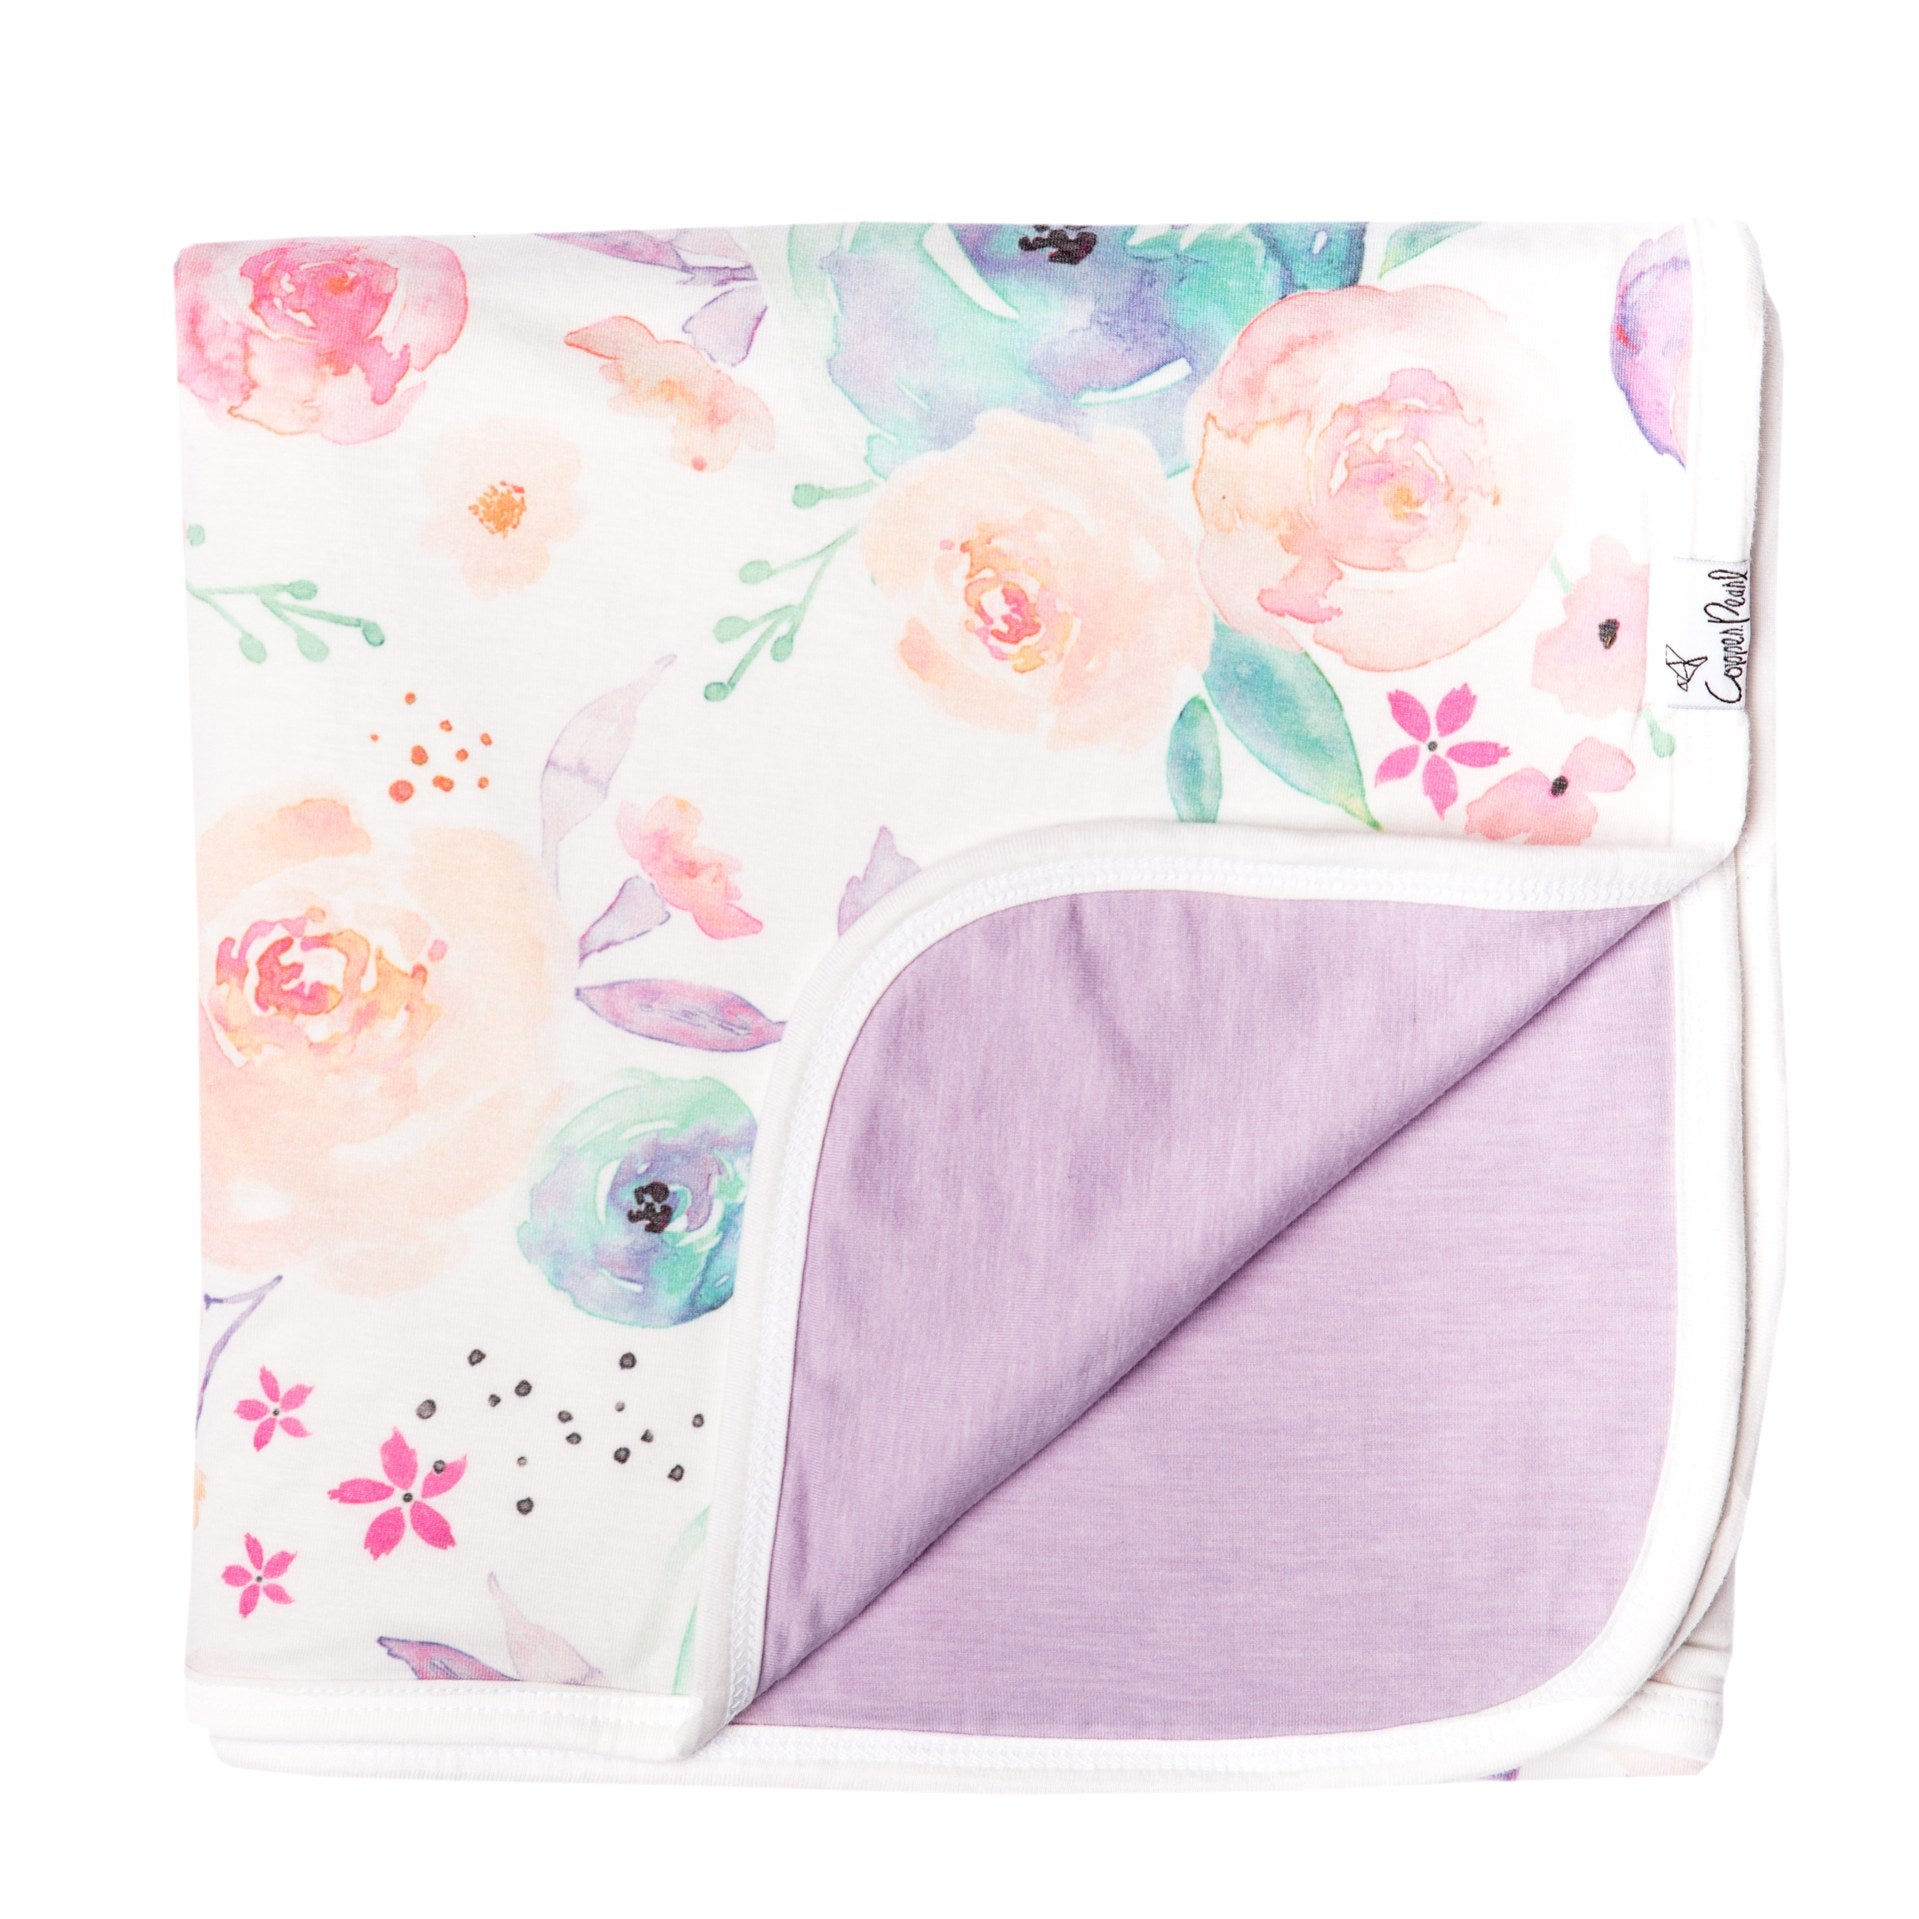 3 Layer Strechty Quilt - Bloom